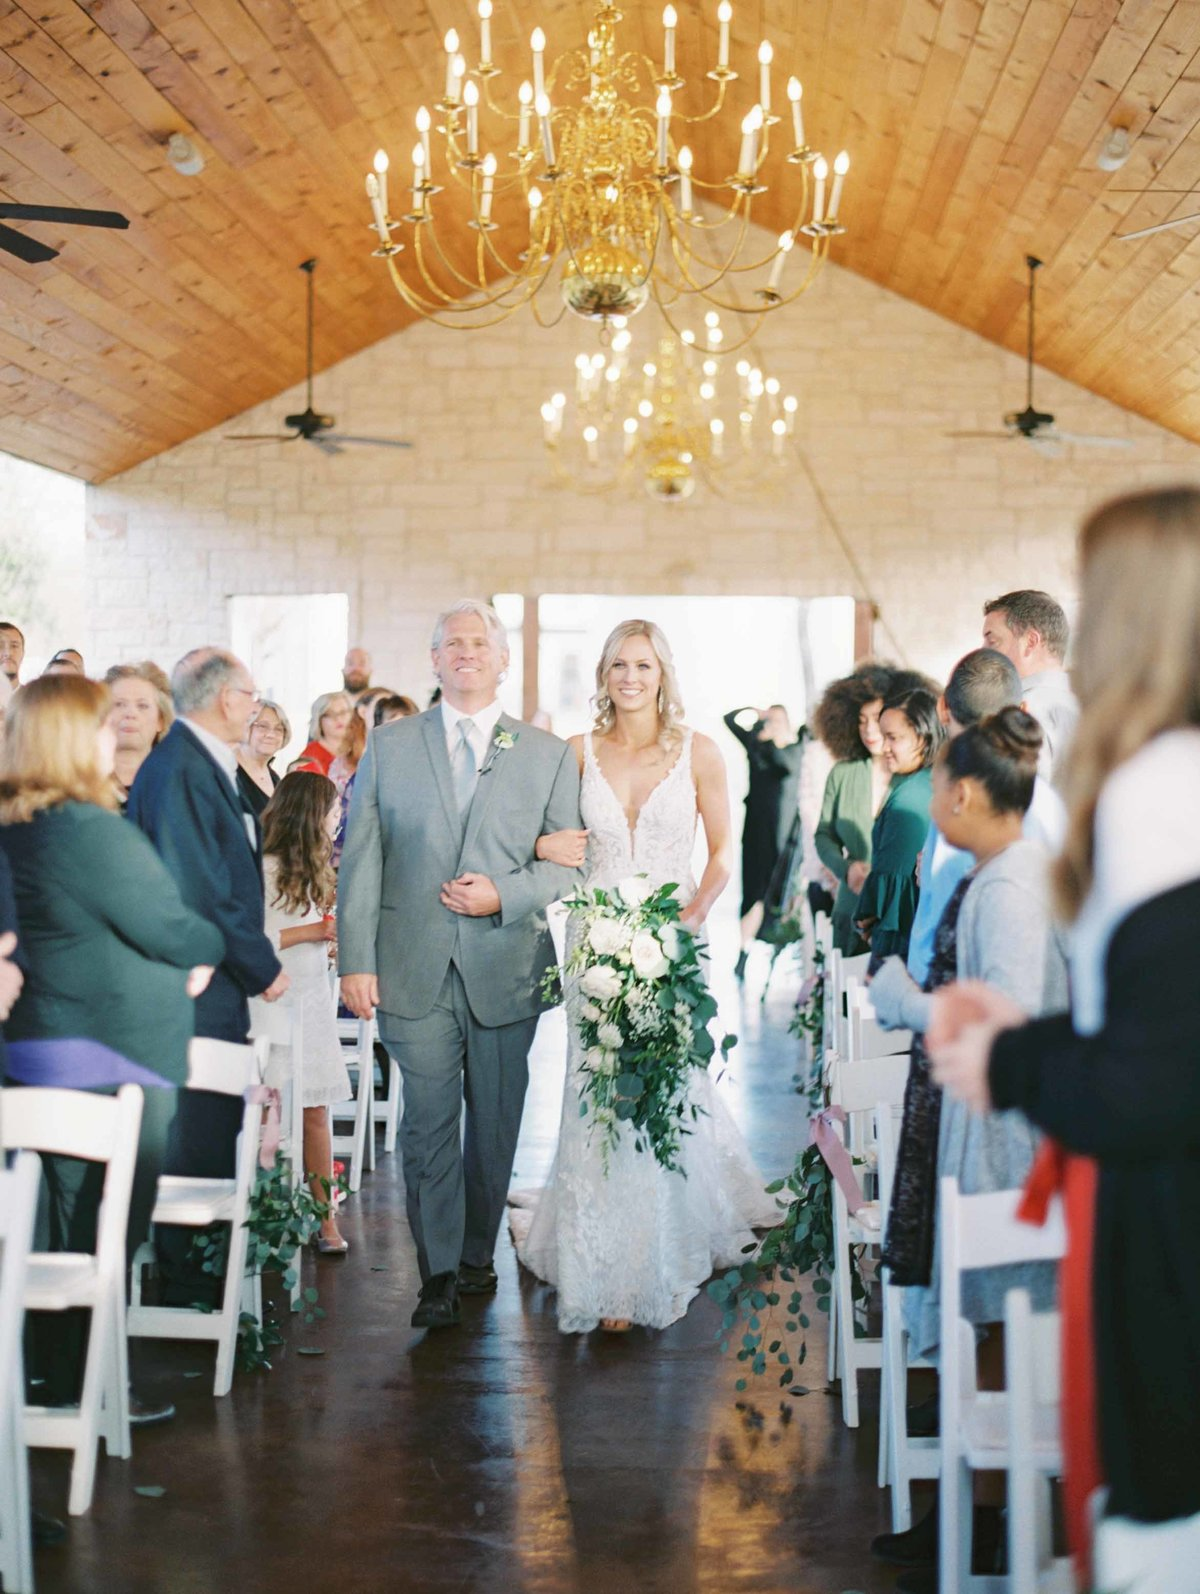 Angel_owens_photography_wedding67